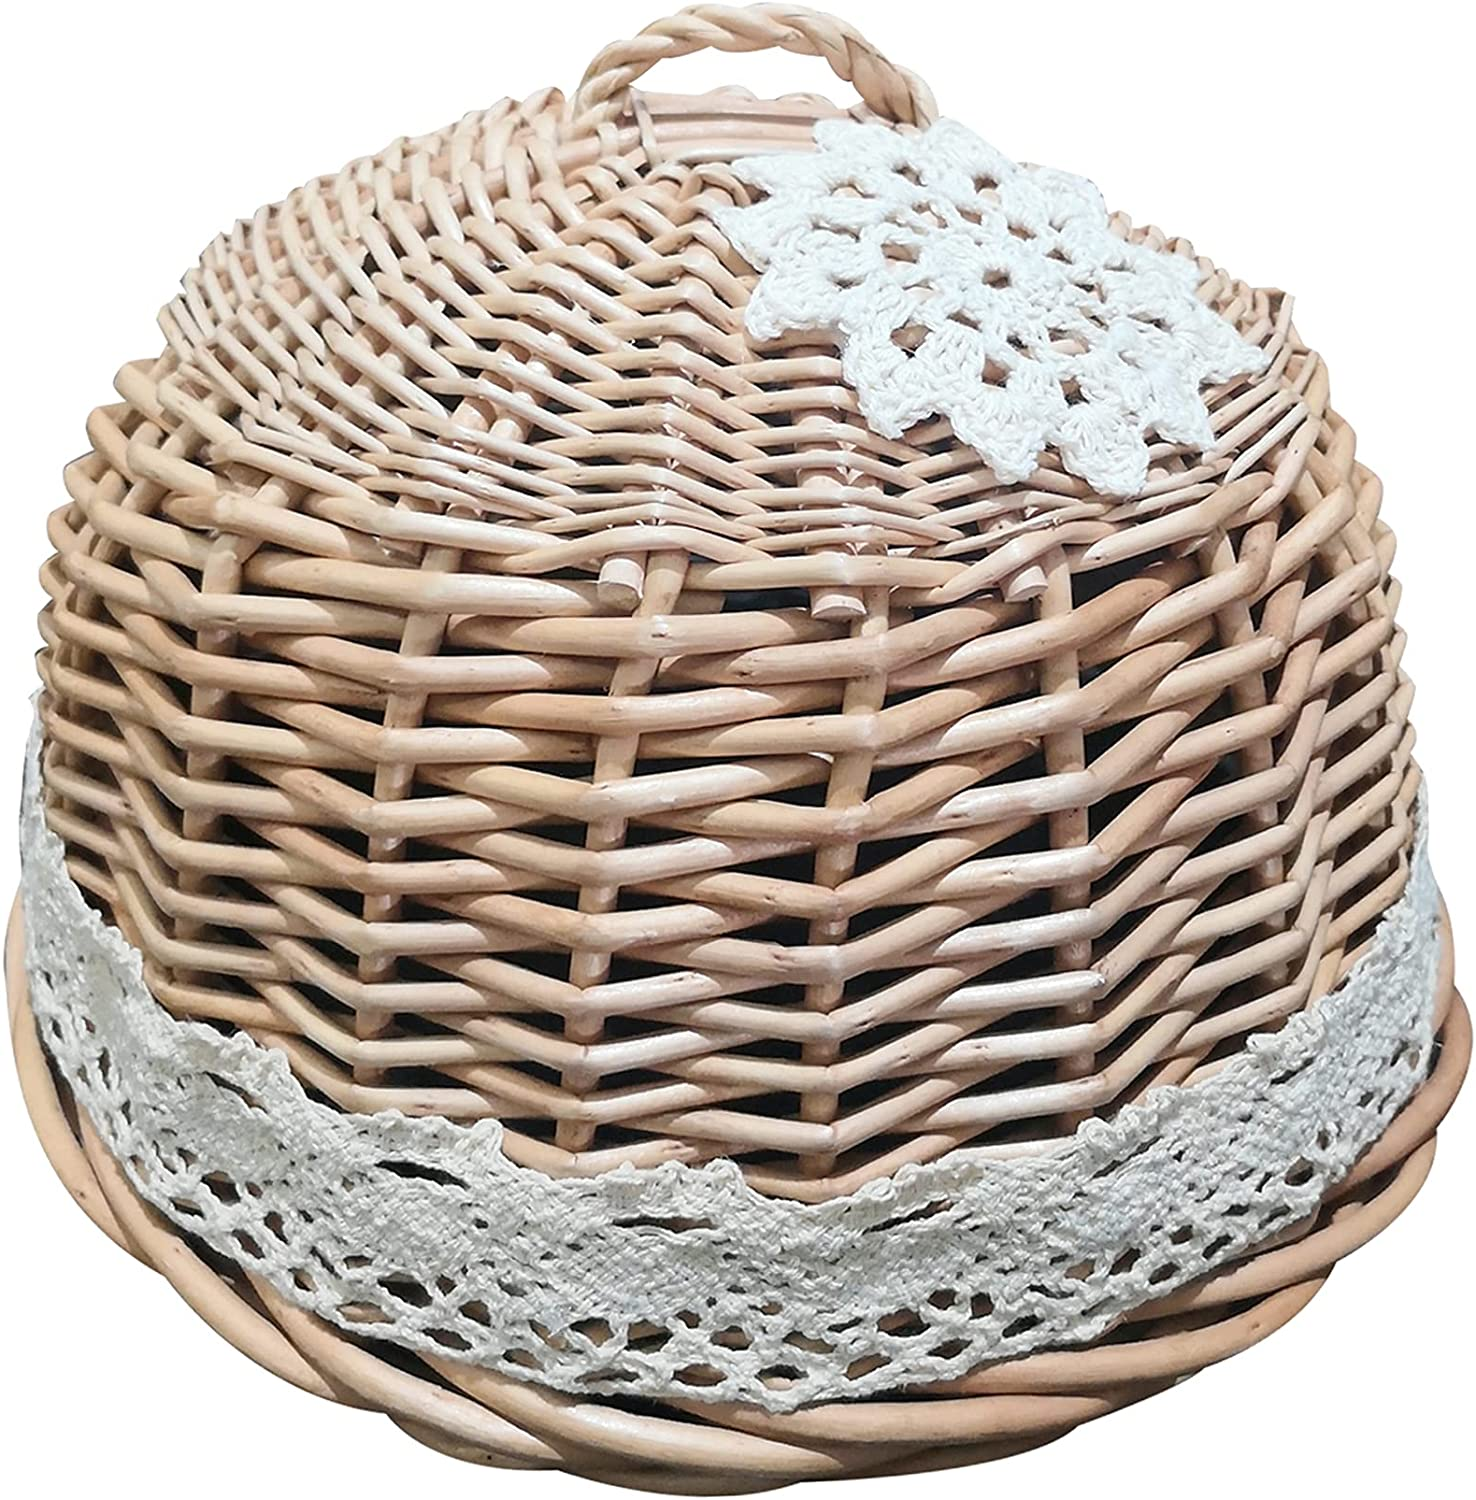 NewFerU Wicker Ranking TOP20 Rattan Woven Food Dome for 1 Lid Anti Cover Classic Flies